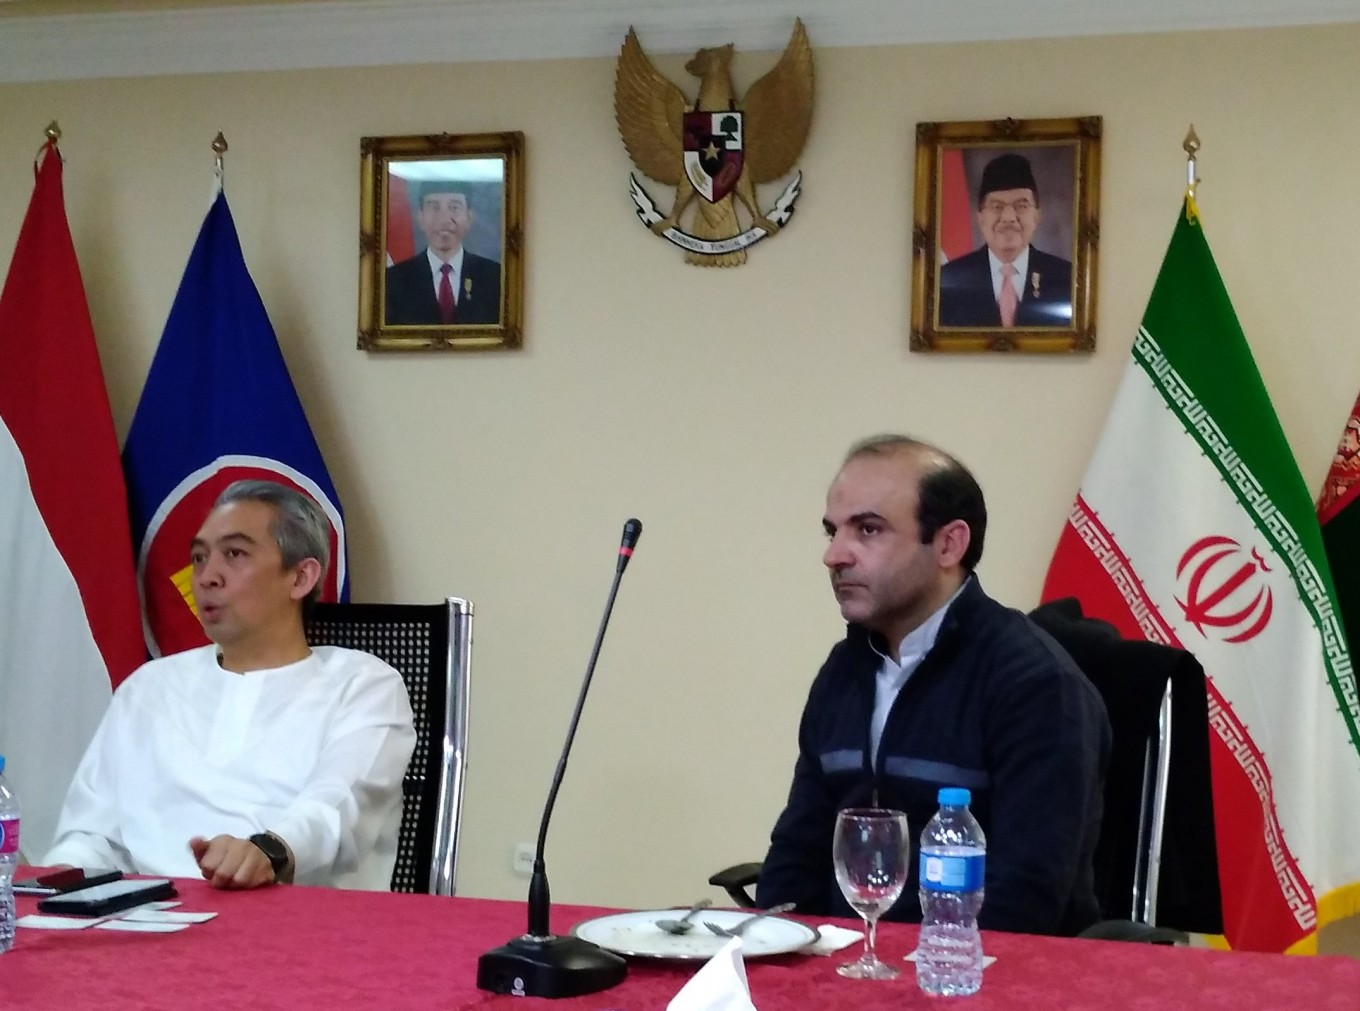 Indonesia reiterates support for Iran nuclear deal